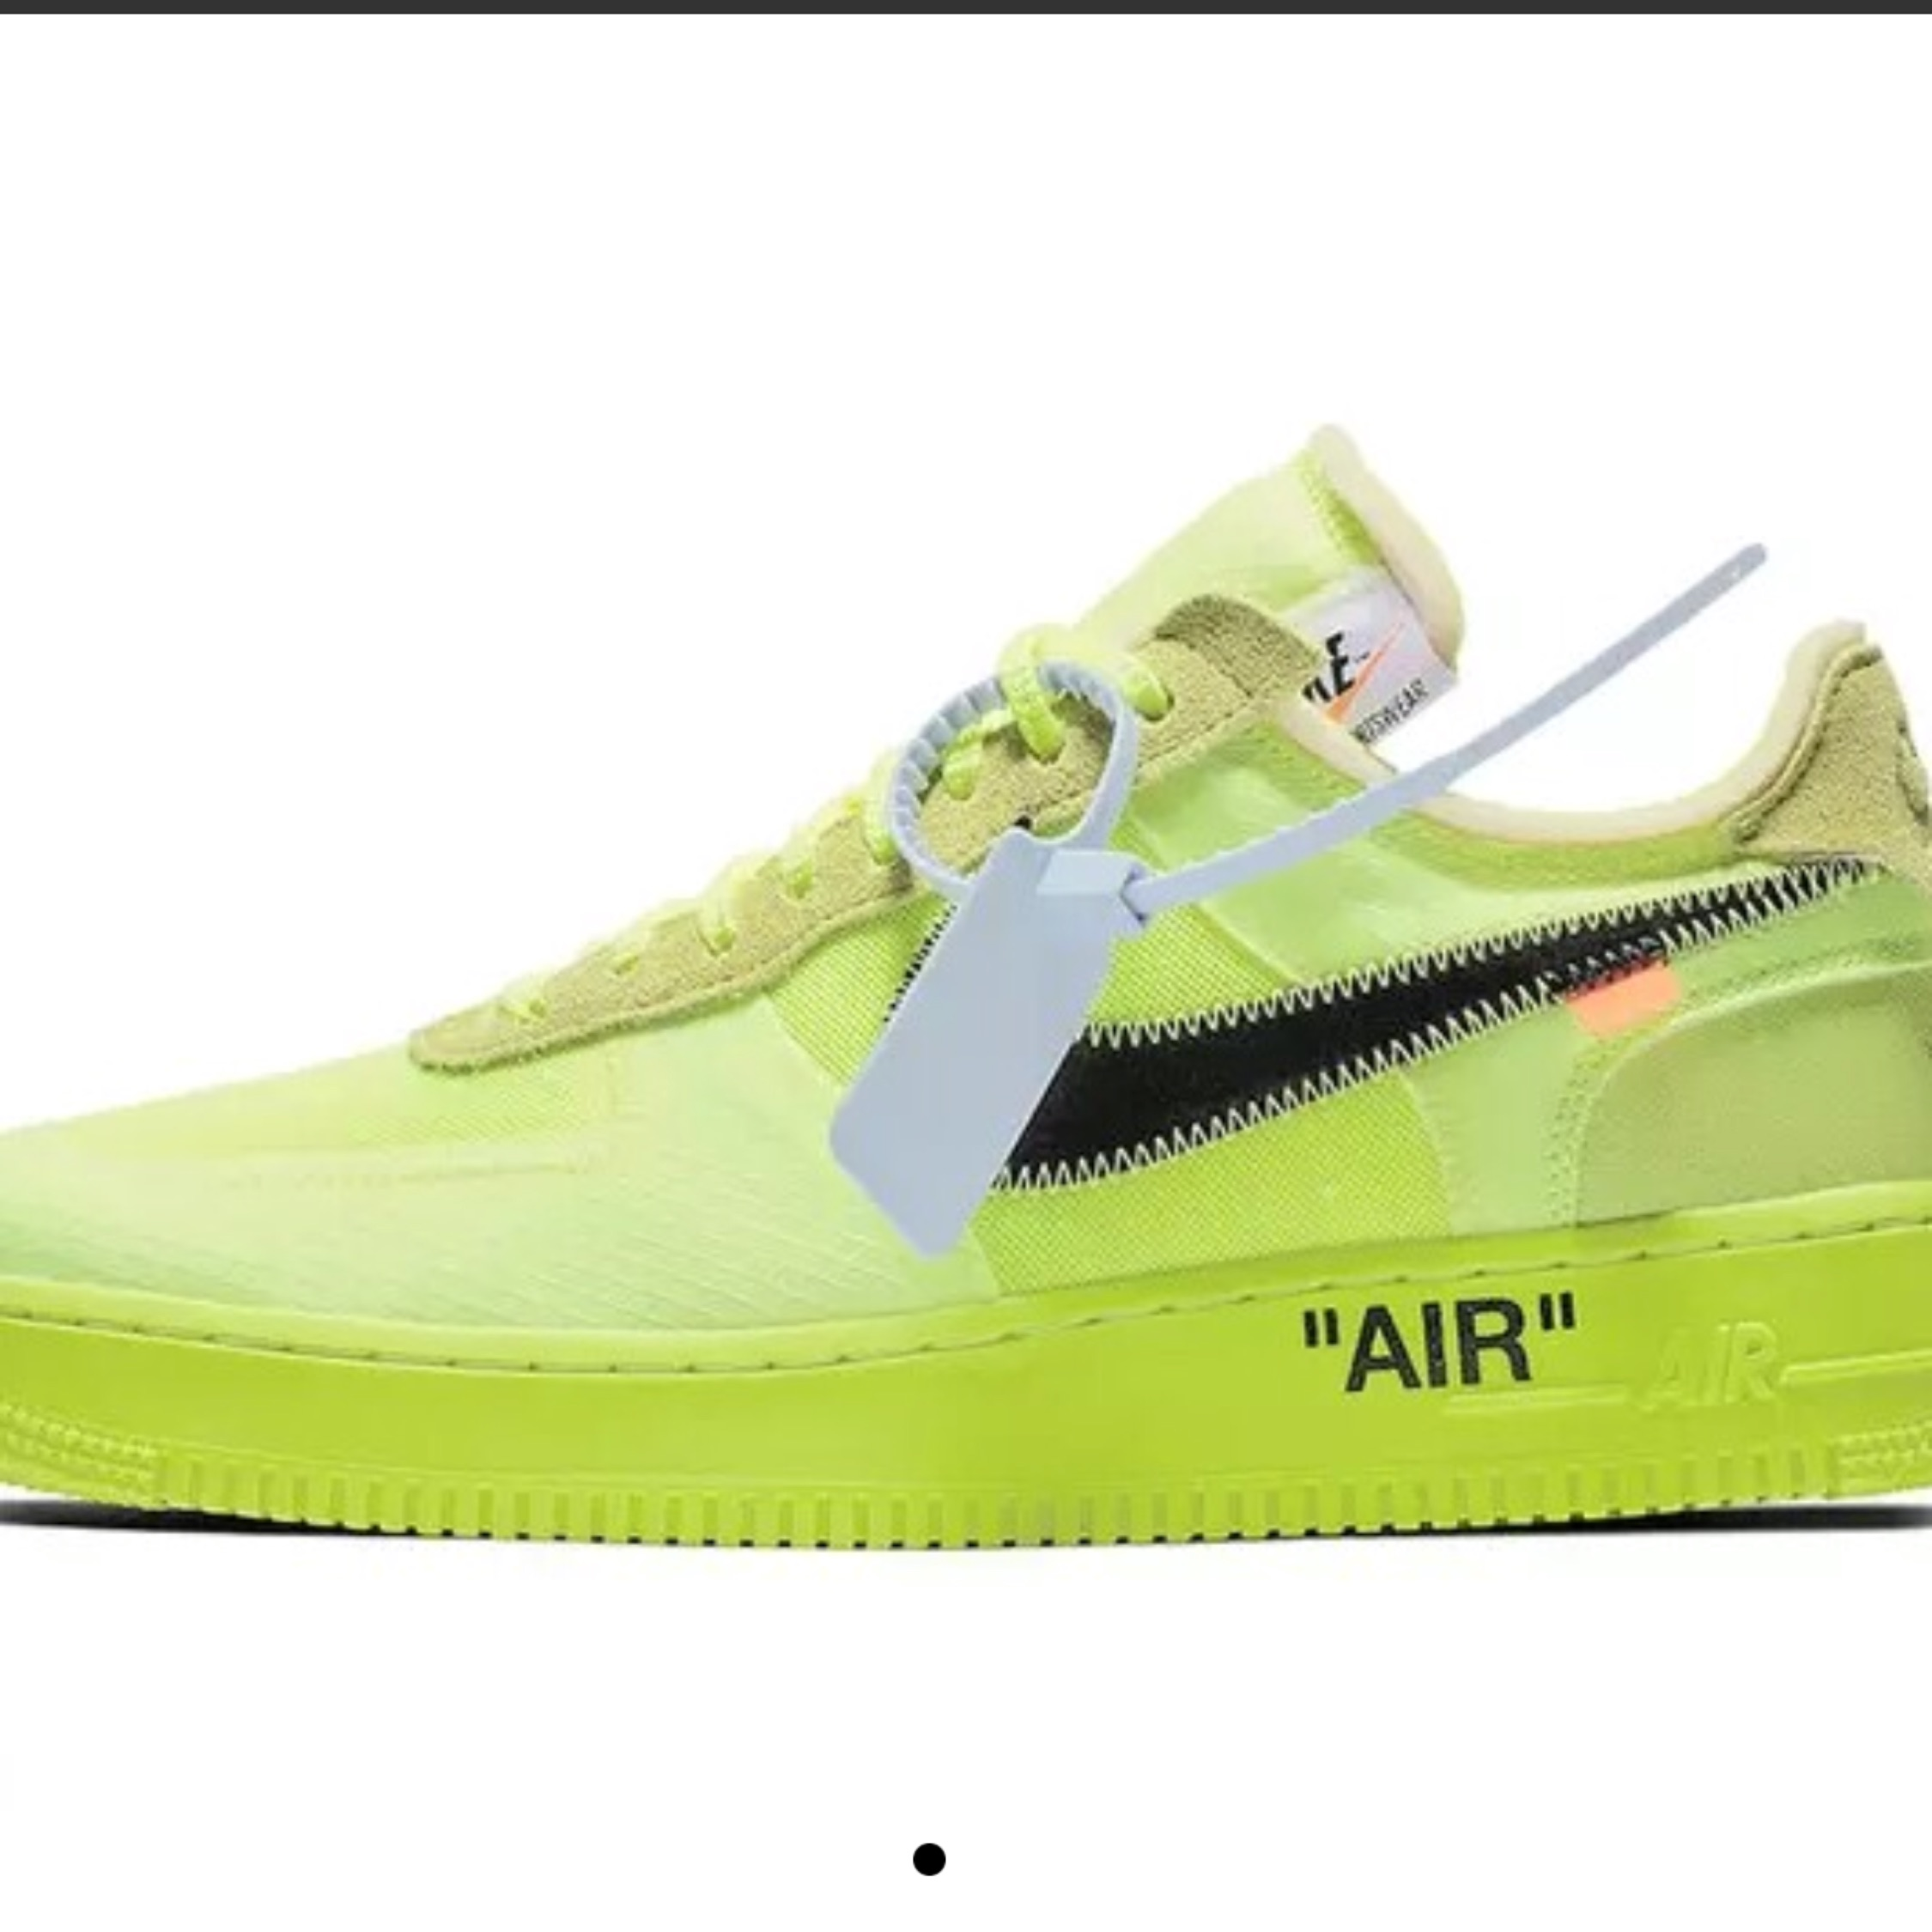 good service autumn shoes save up to 80% The Ten : Nike Air Force 1 Low X Virgil Abloh